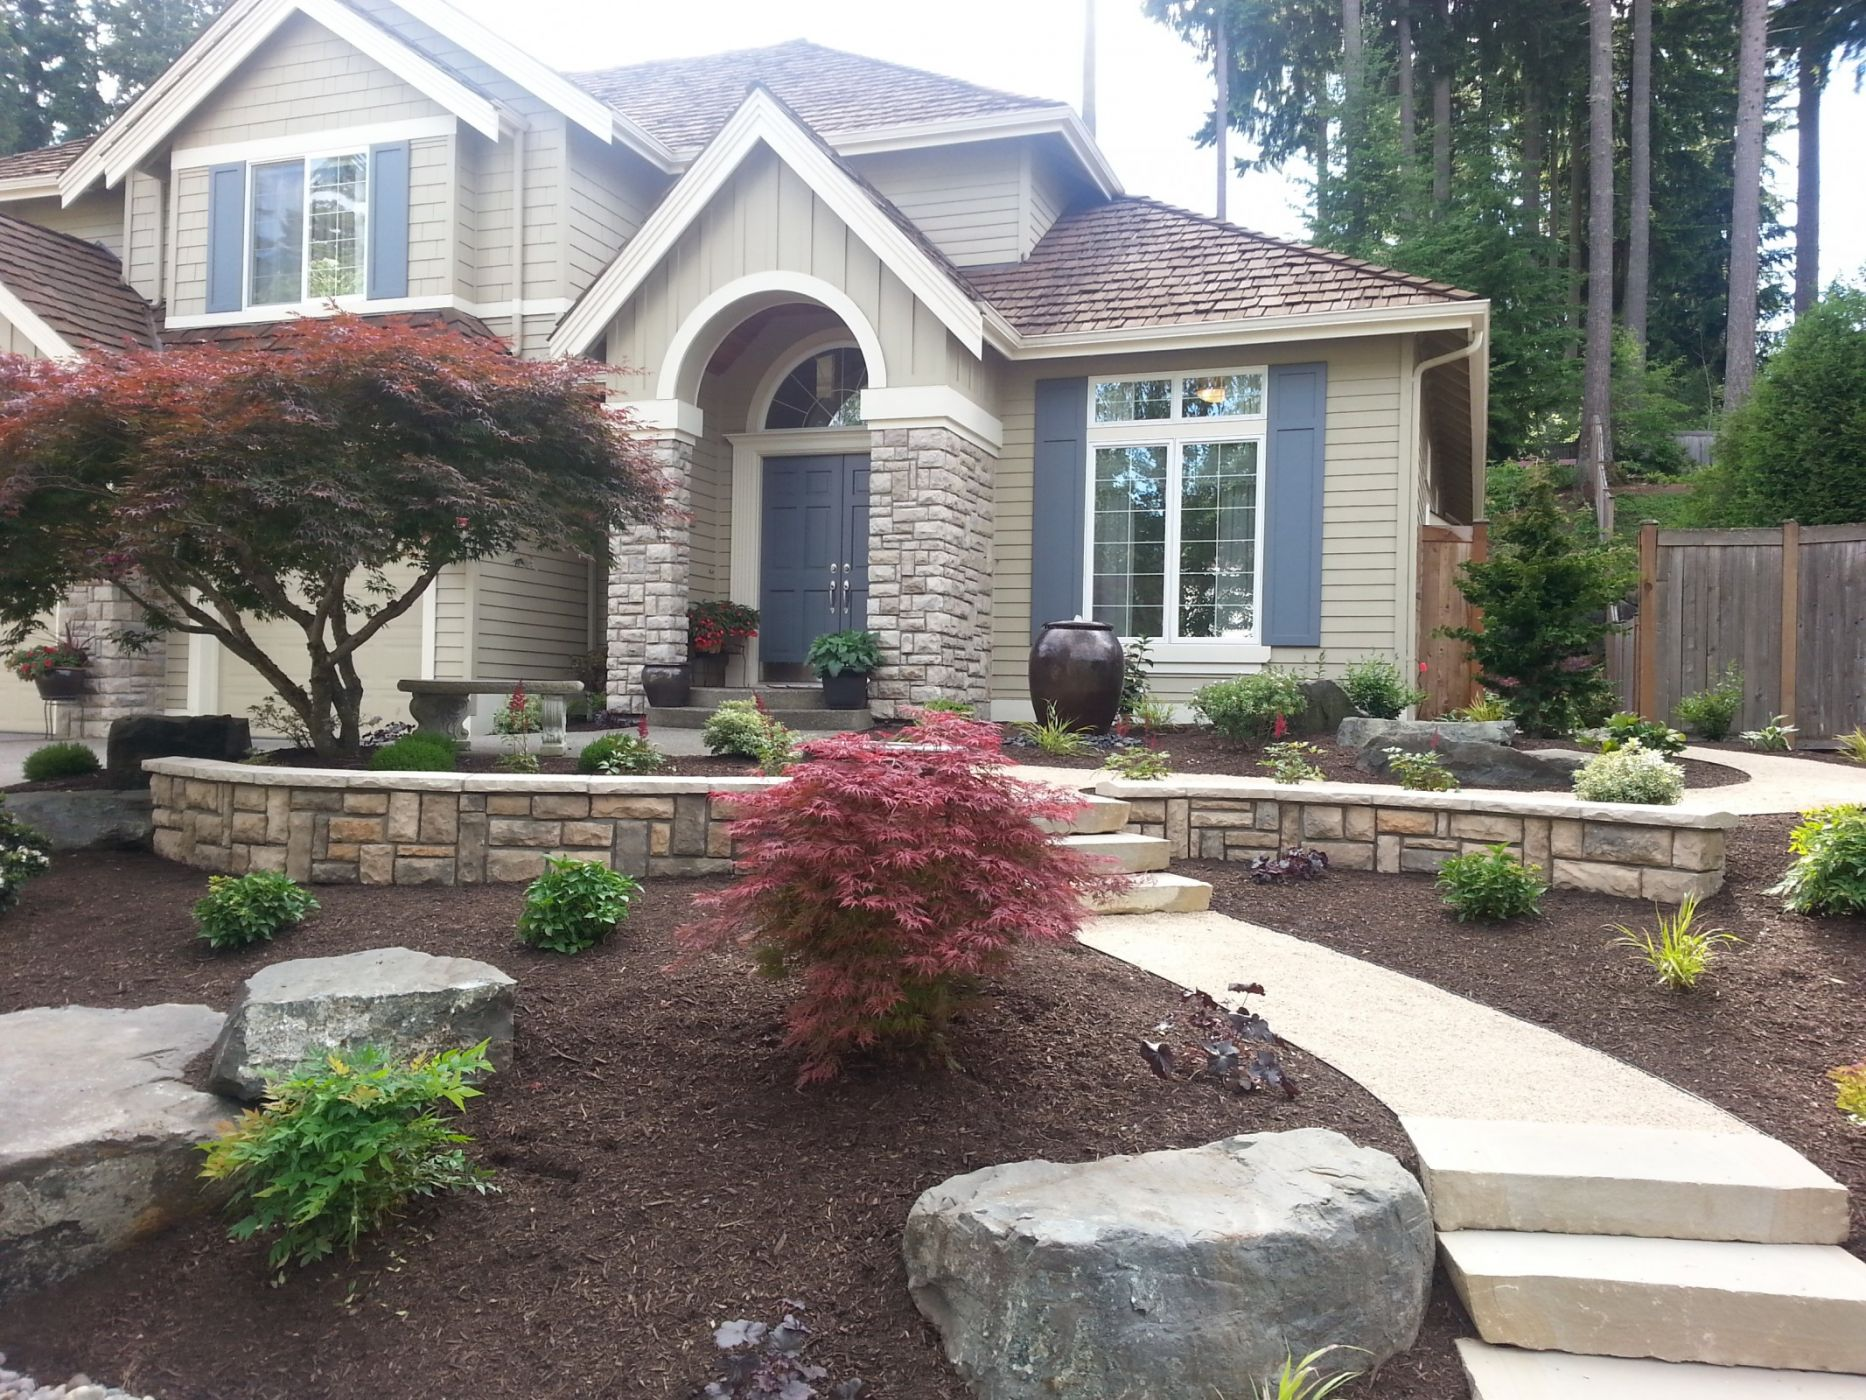 Janika landscaping ideas front yard illinois here for Design my front garden